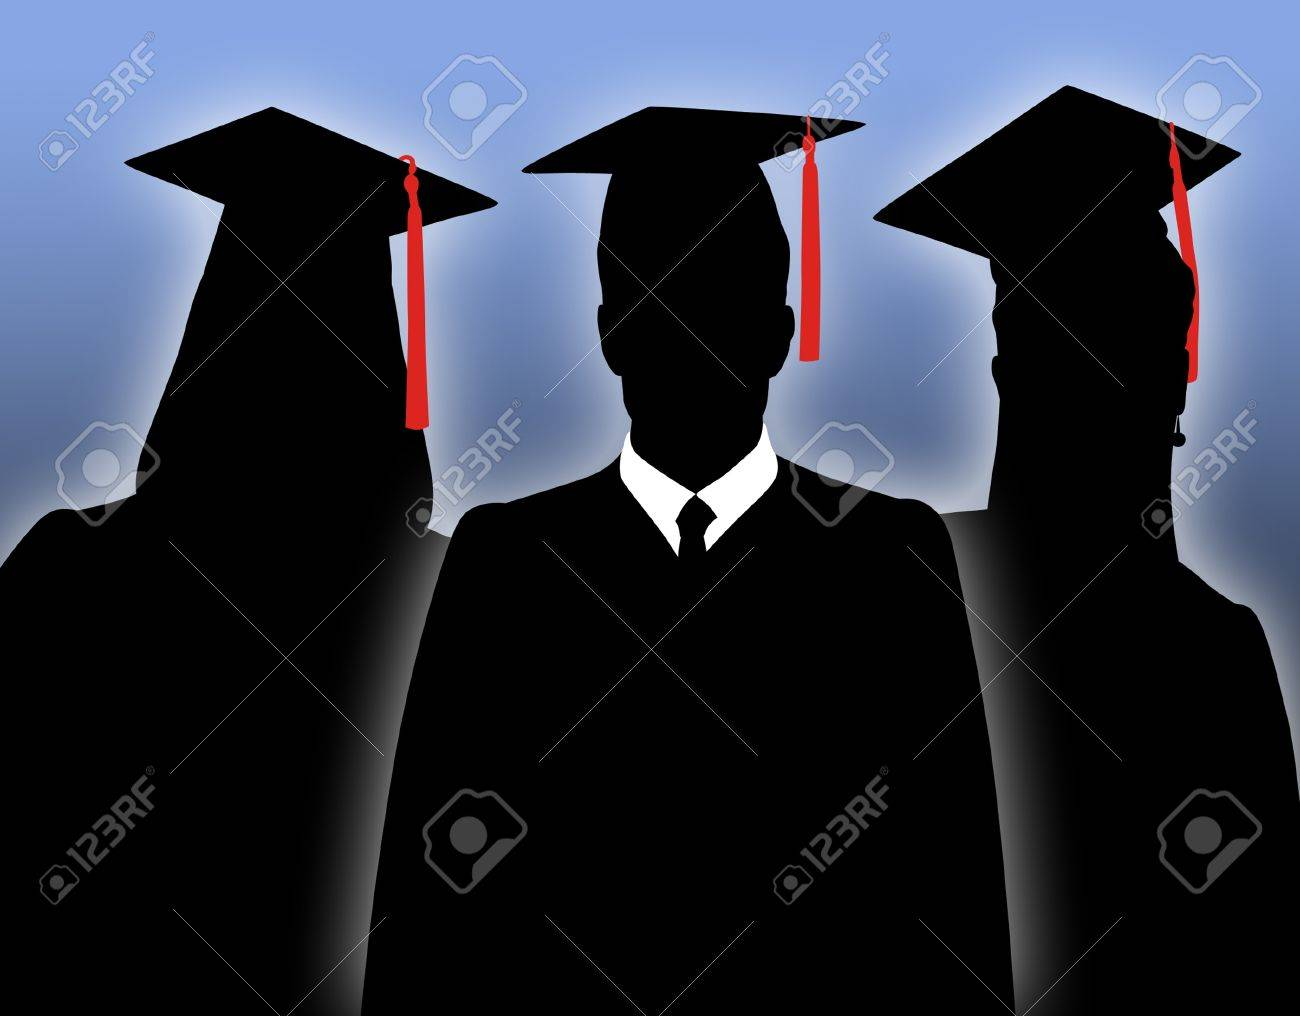 Silhouettes of school graduates in togas. - 9071911